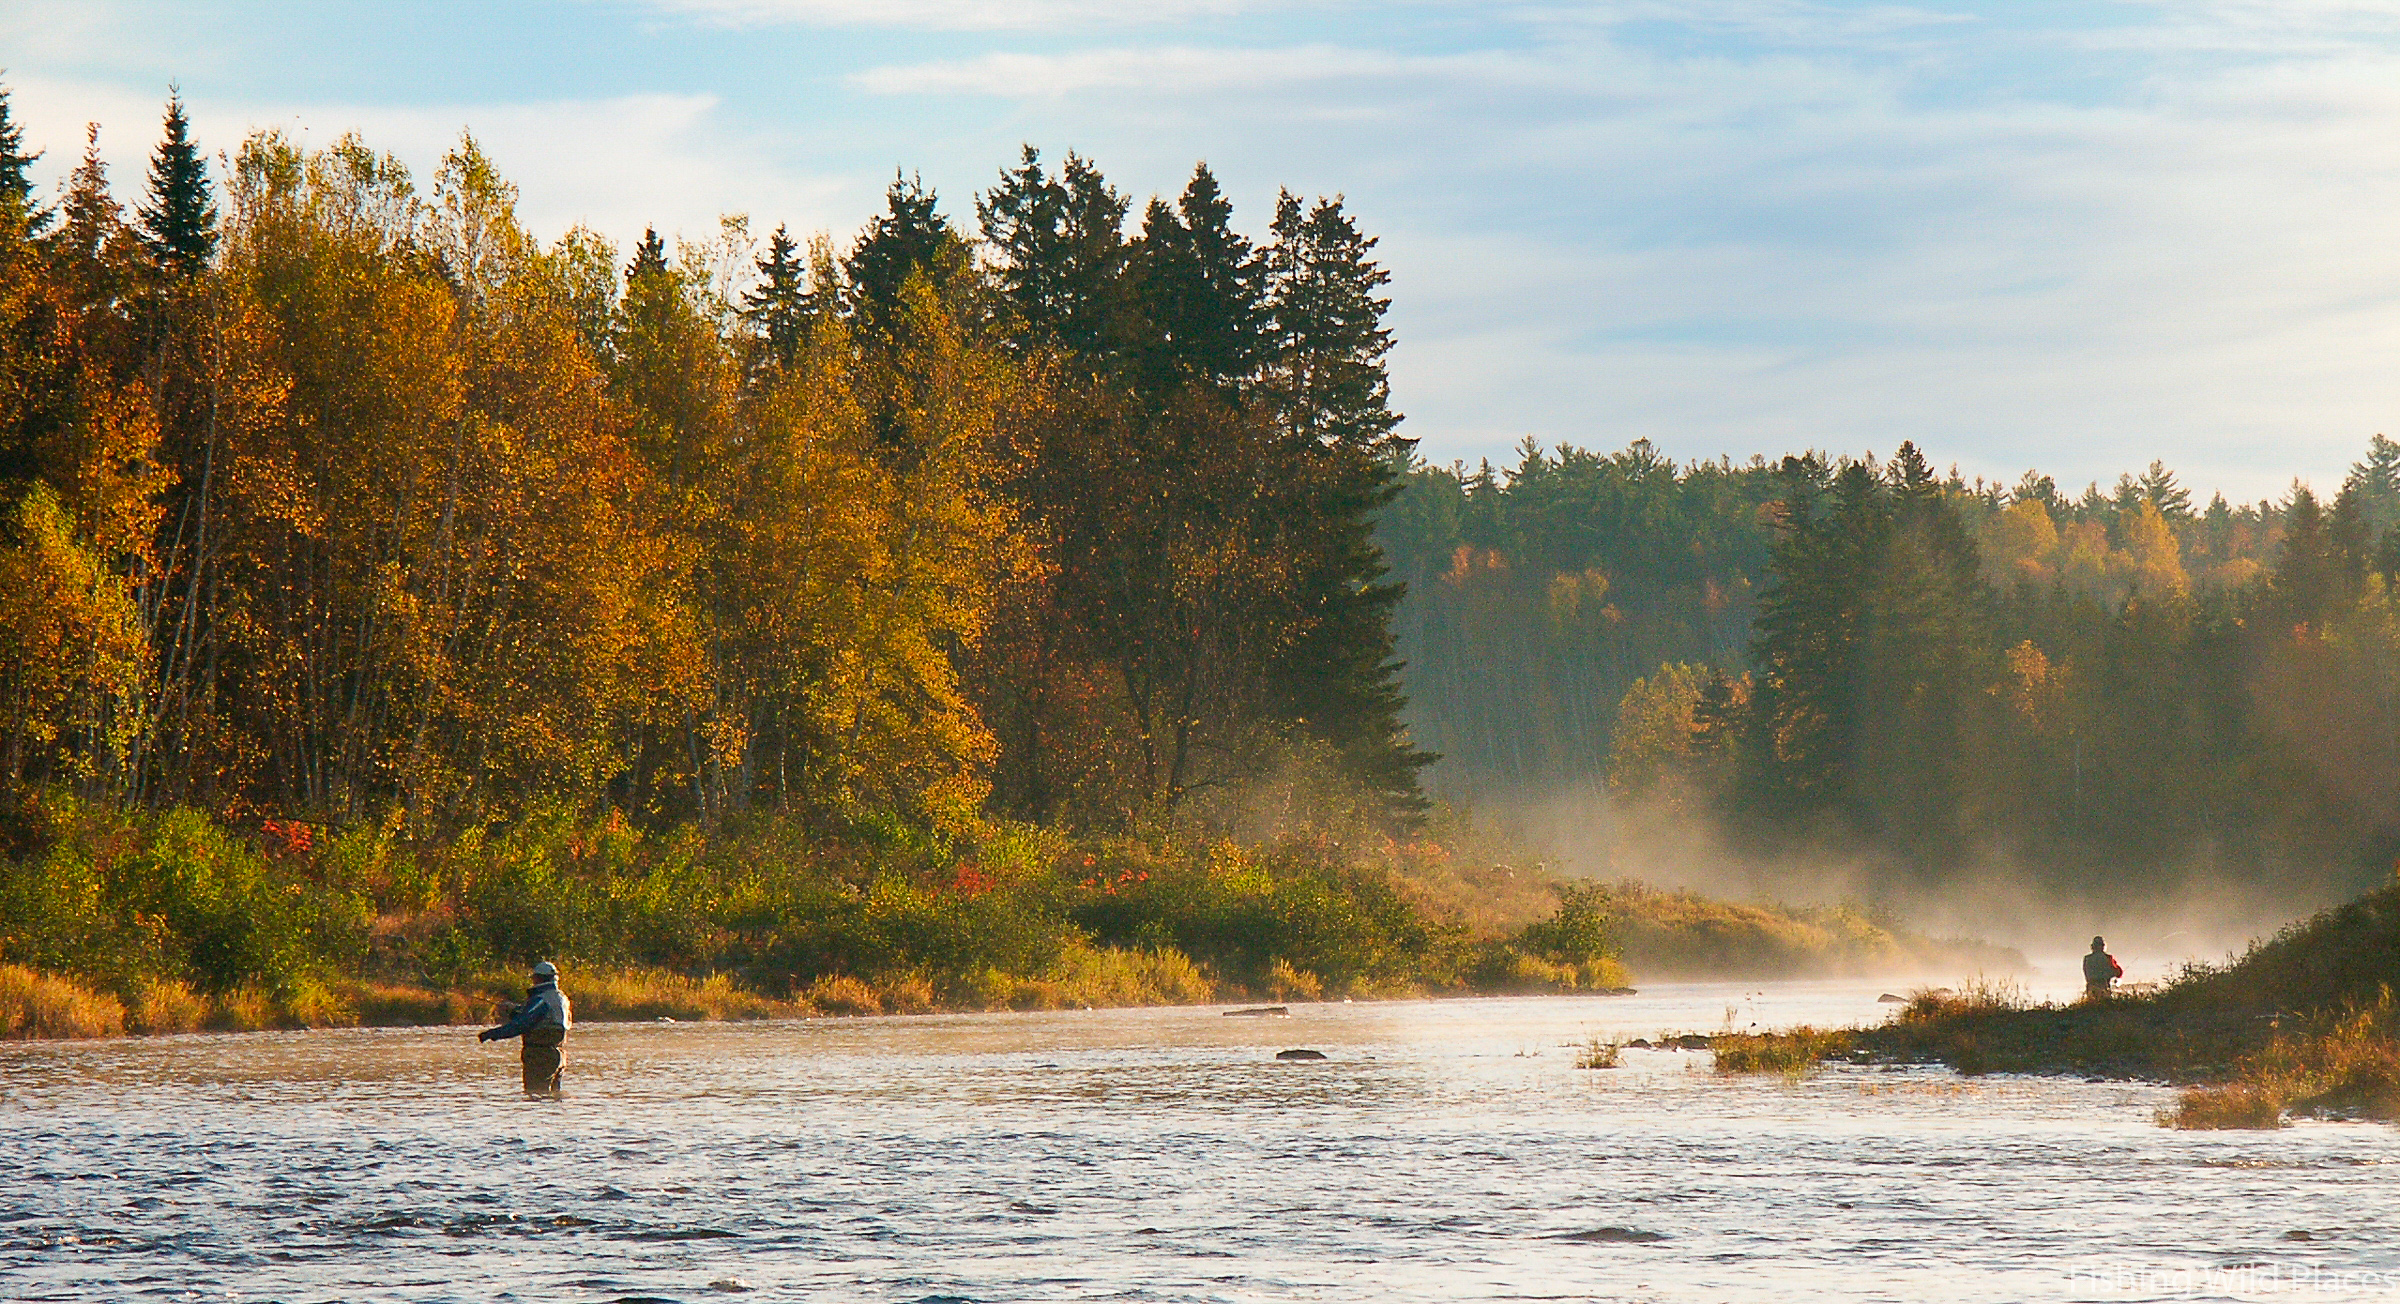 River Cains in Autumn